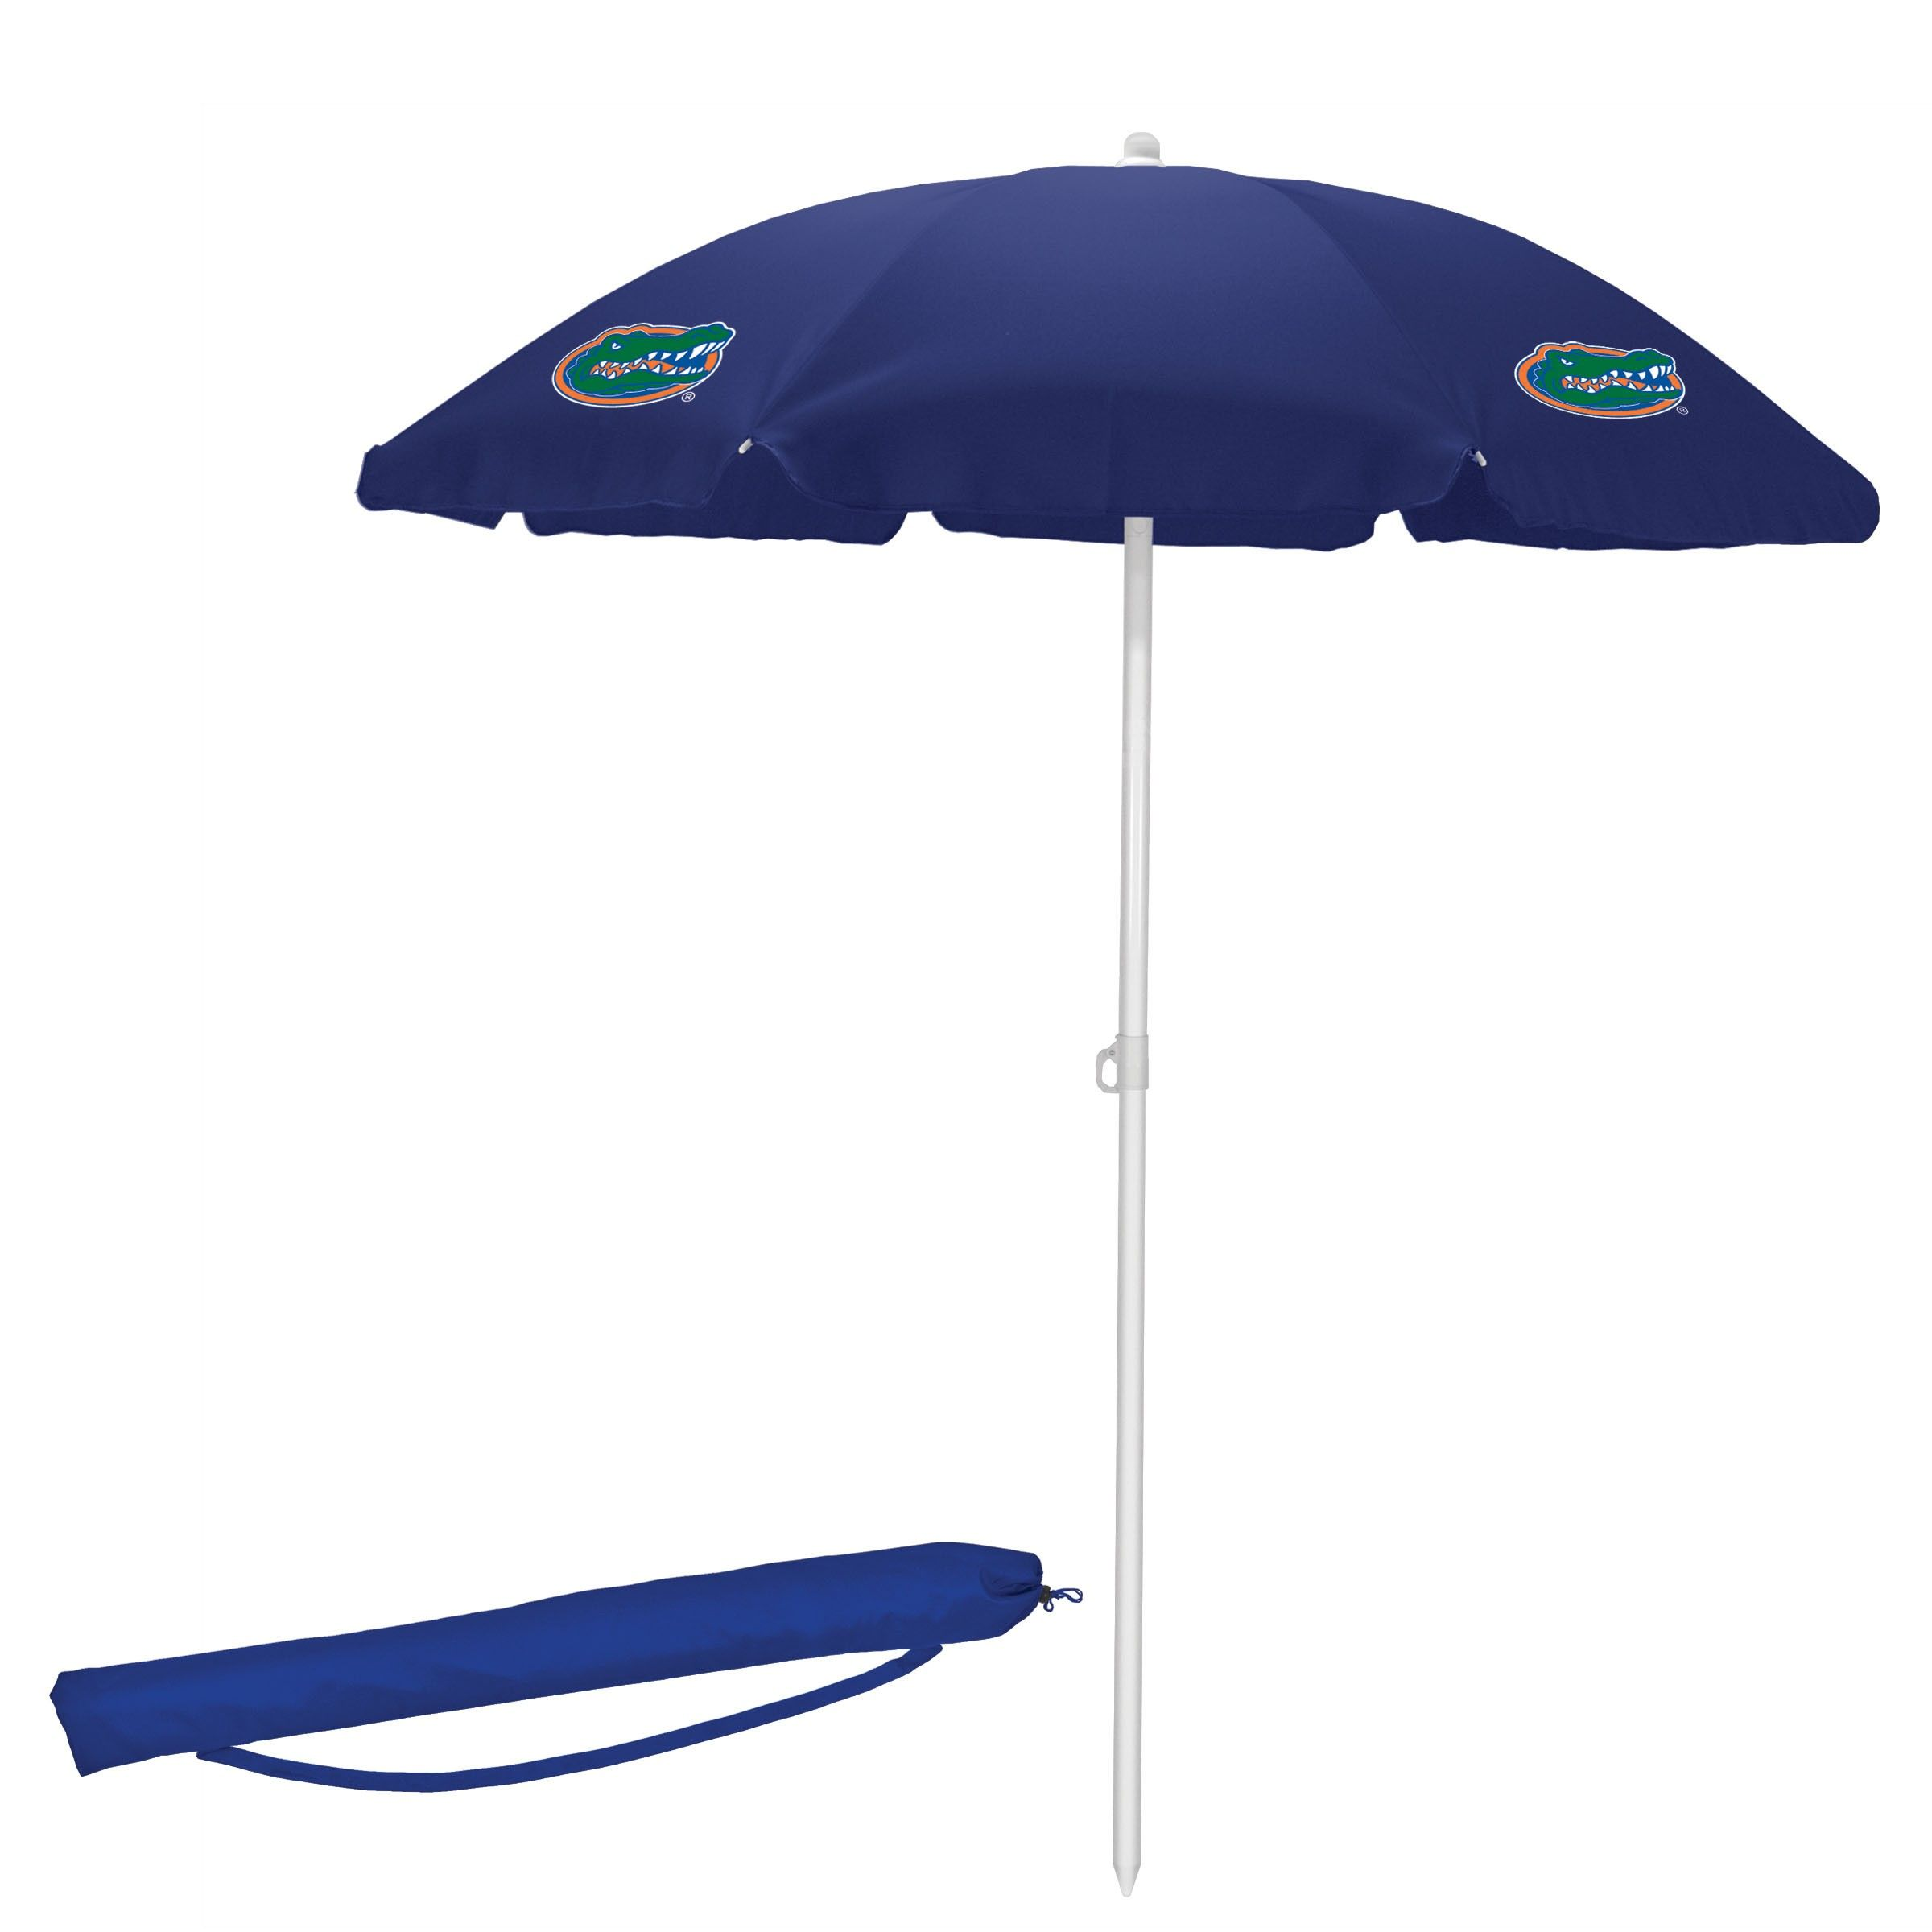 Florida Gators Beach Umbrella Great For The Beach Or Anytime You